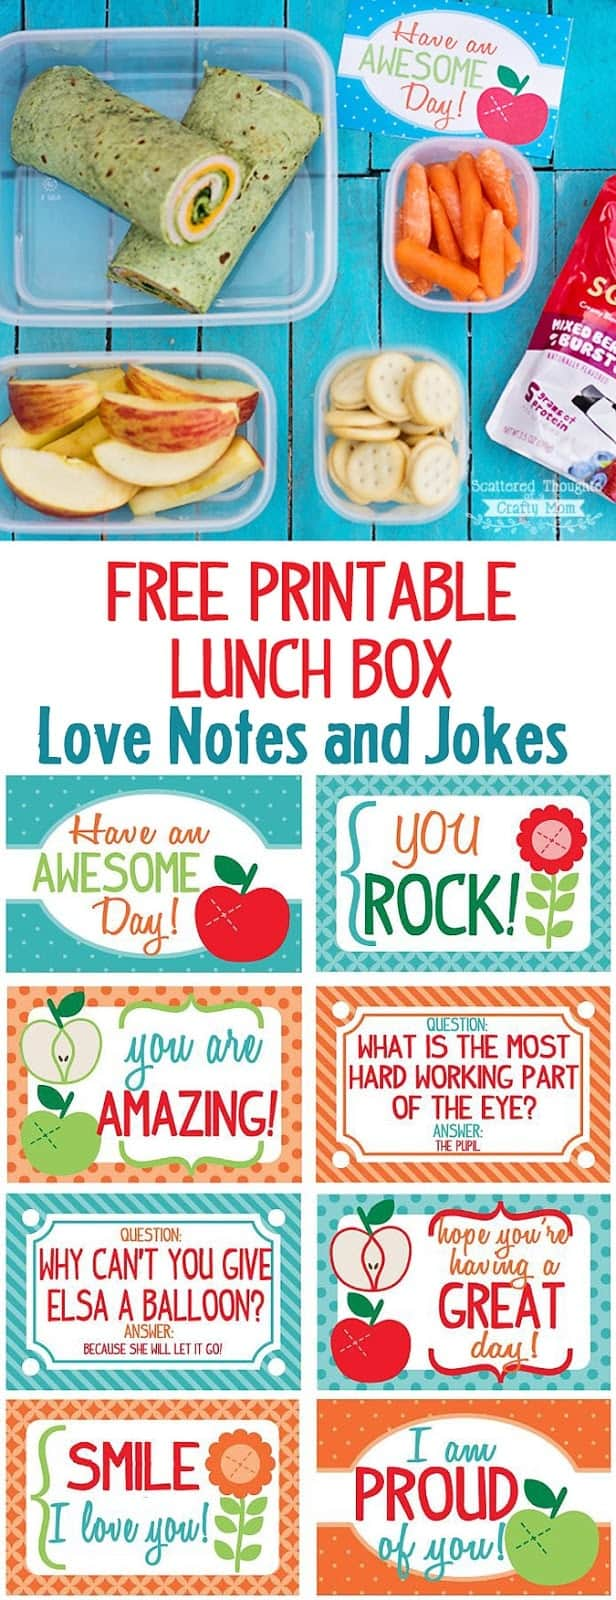 Free Printable Lunch Box Love Notes and Jokes